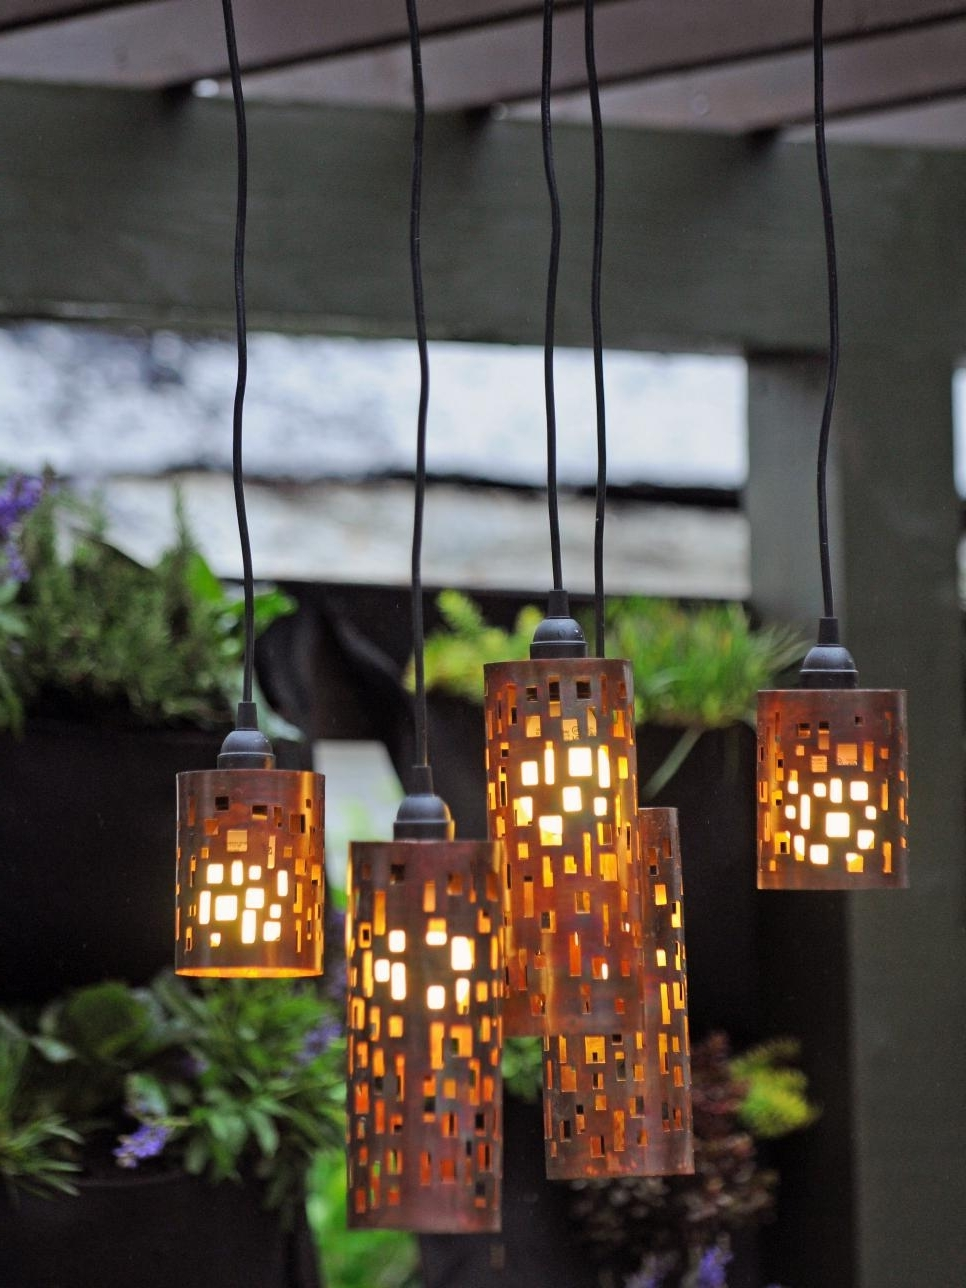 Favorite Outdoor Lighting: Amusing Outdoor Hanging Lights Patio How To Hang Intended For Outdoor Ceiling Lights For Patio (Gallery 20 of 20)